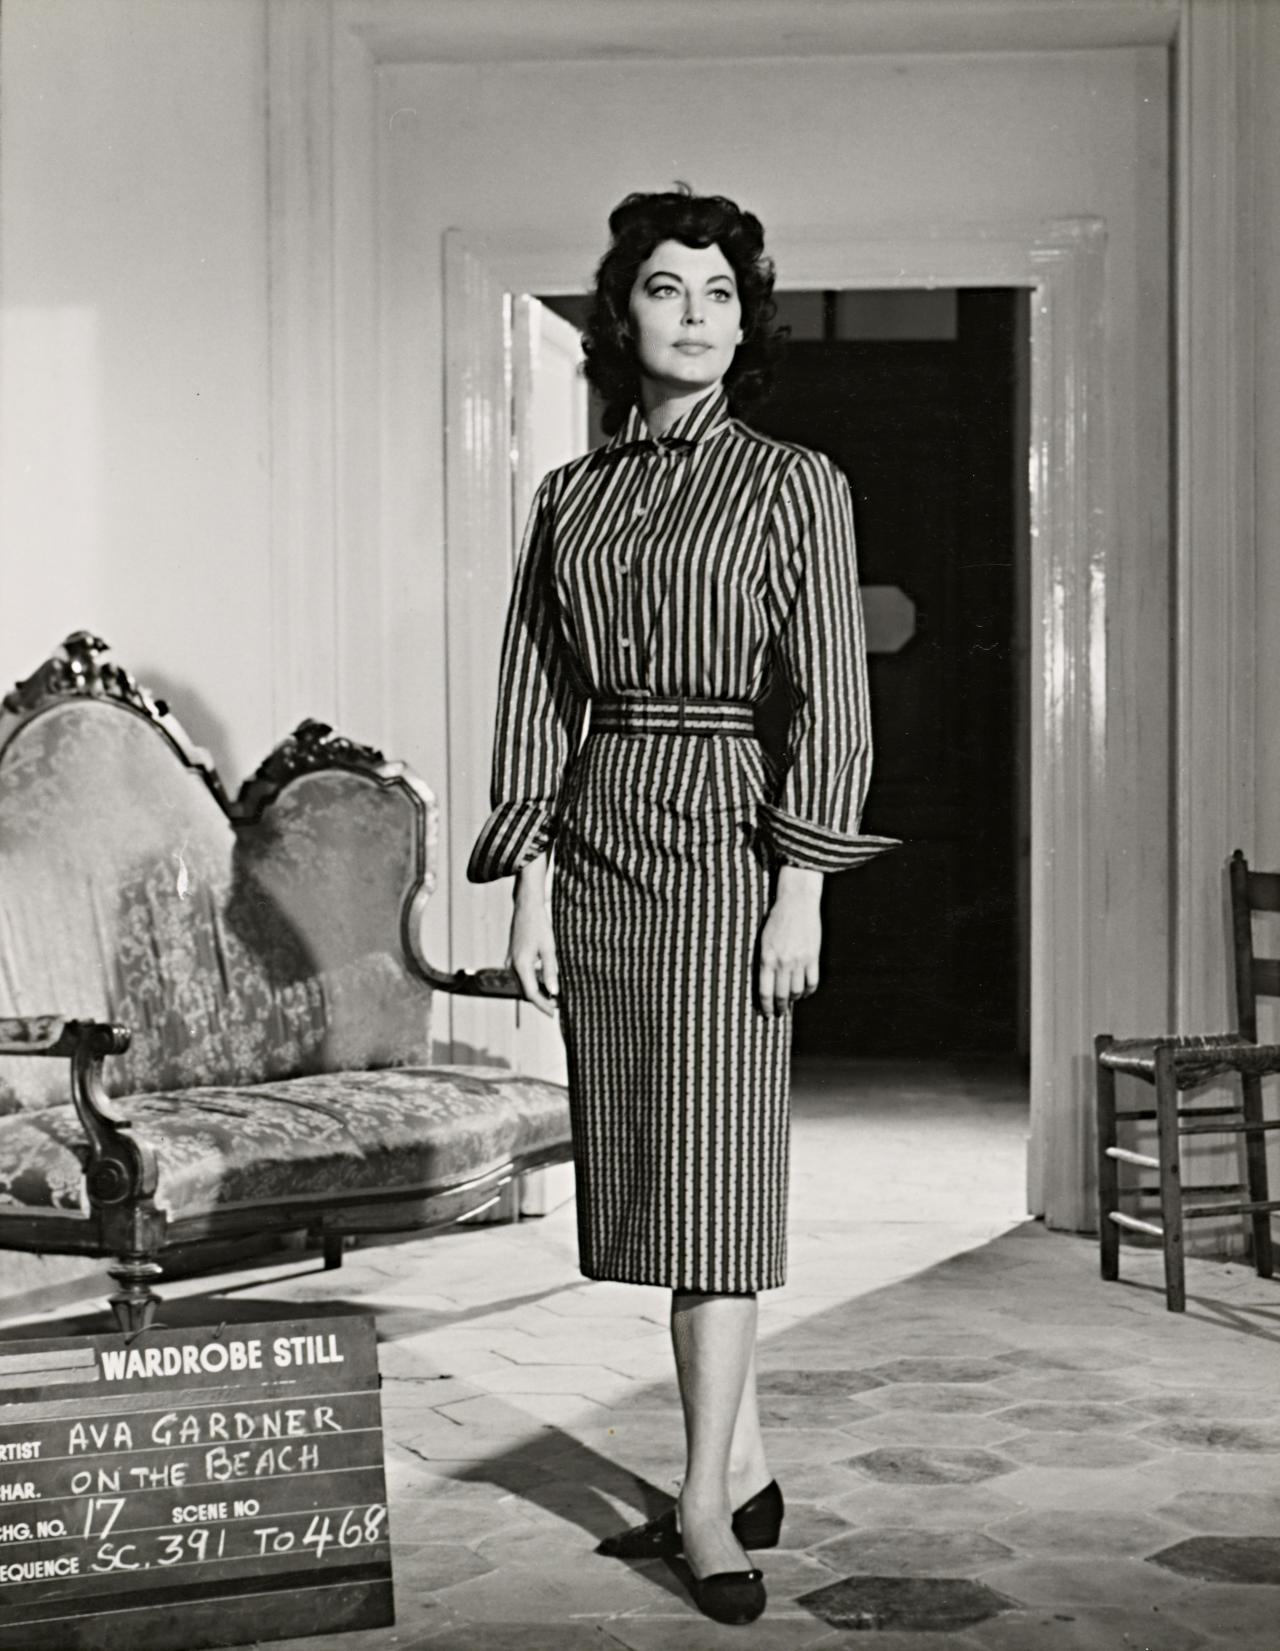 No title (Ava Gardner in wardrobe still for On the beach: Striped dress)